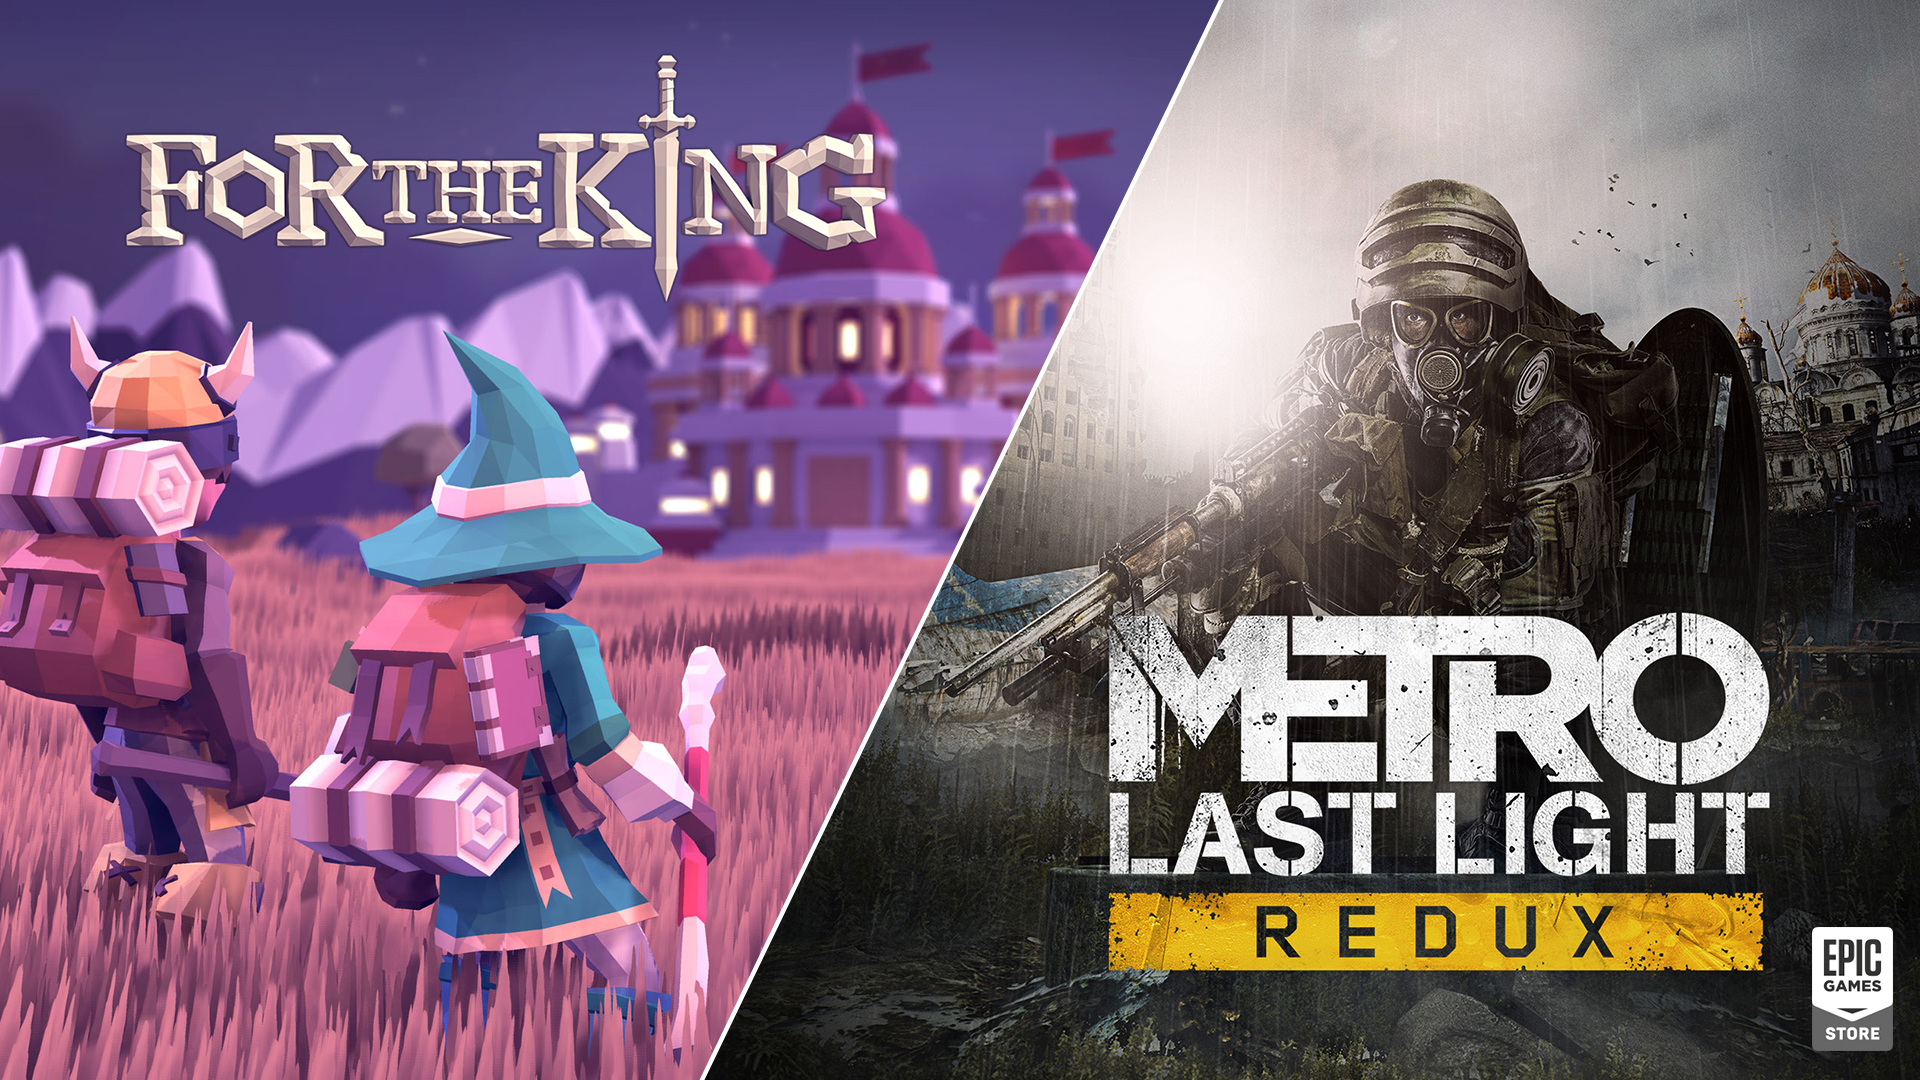 Metro: Last Light Redux and For the King are Epic Game Store's Latest Free Games